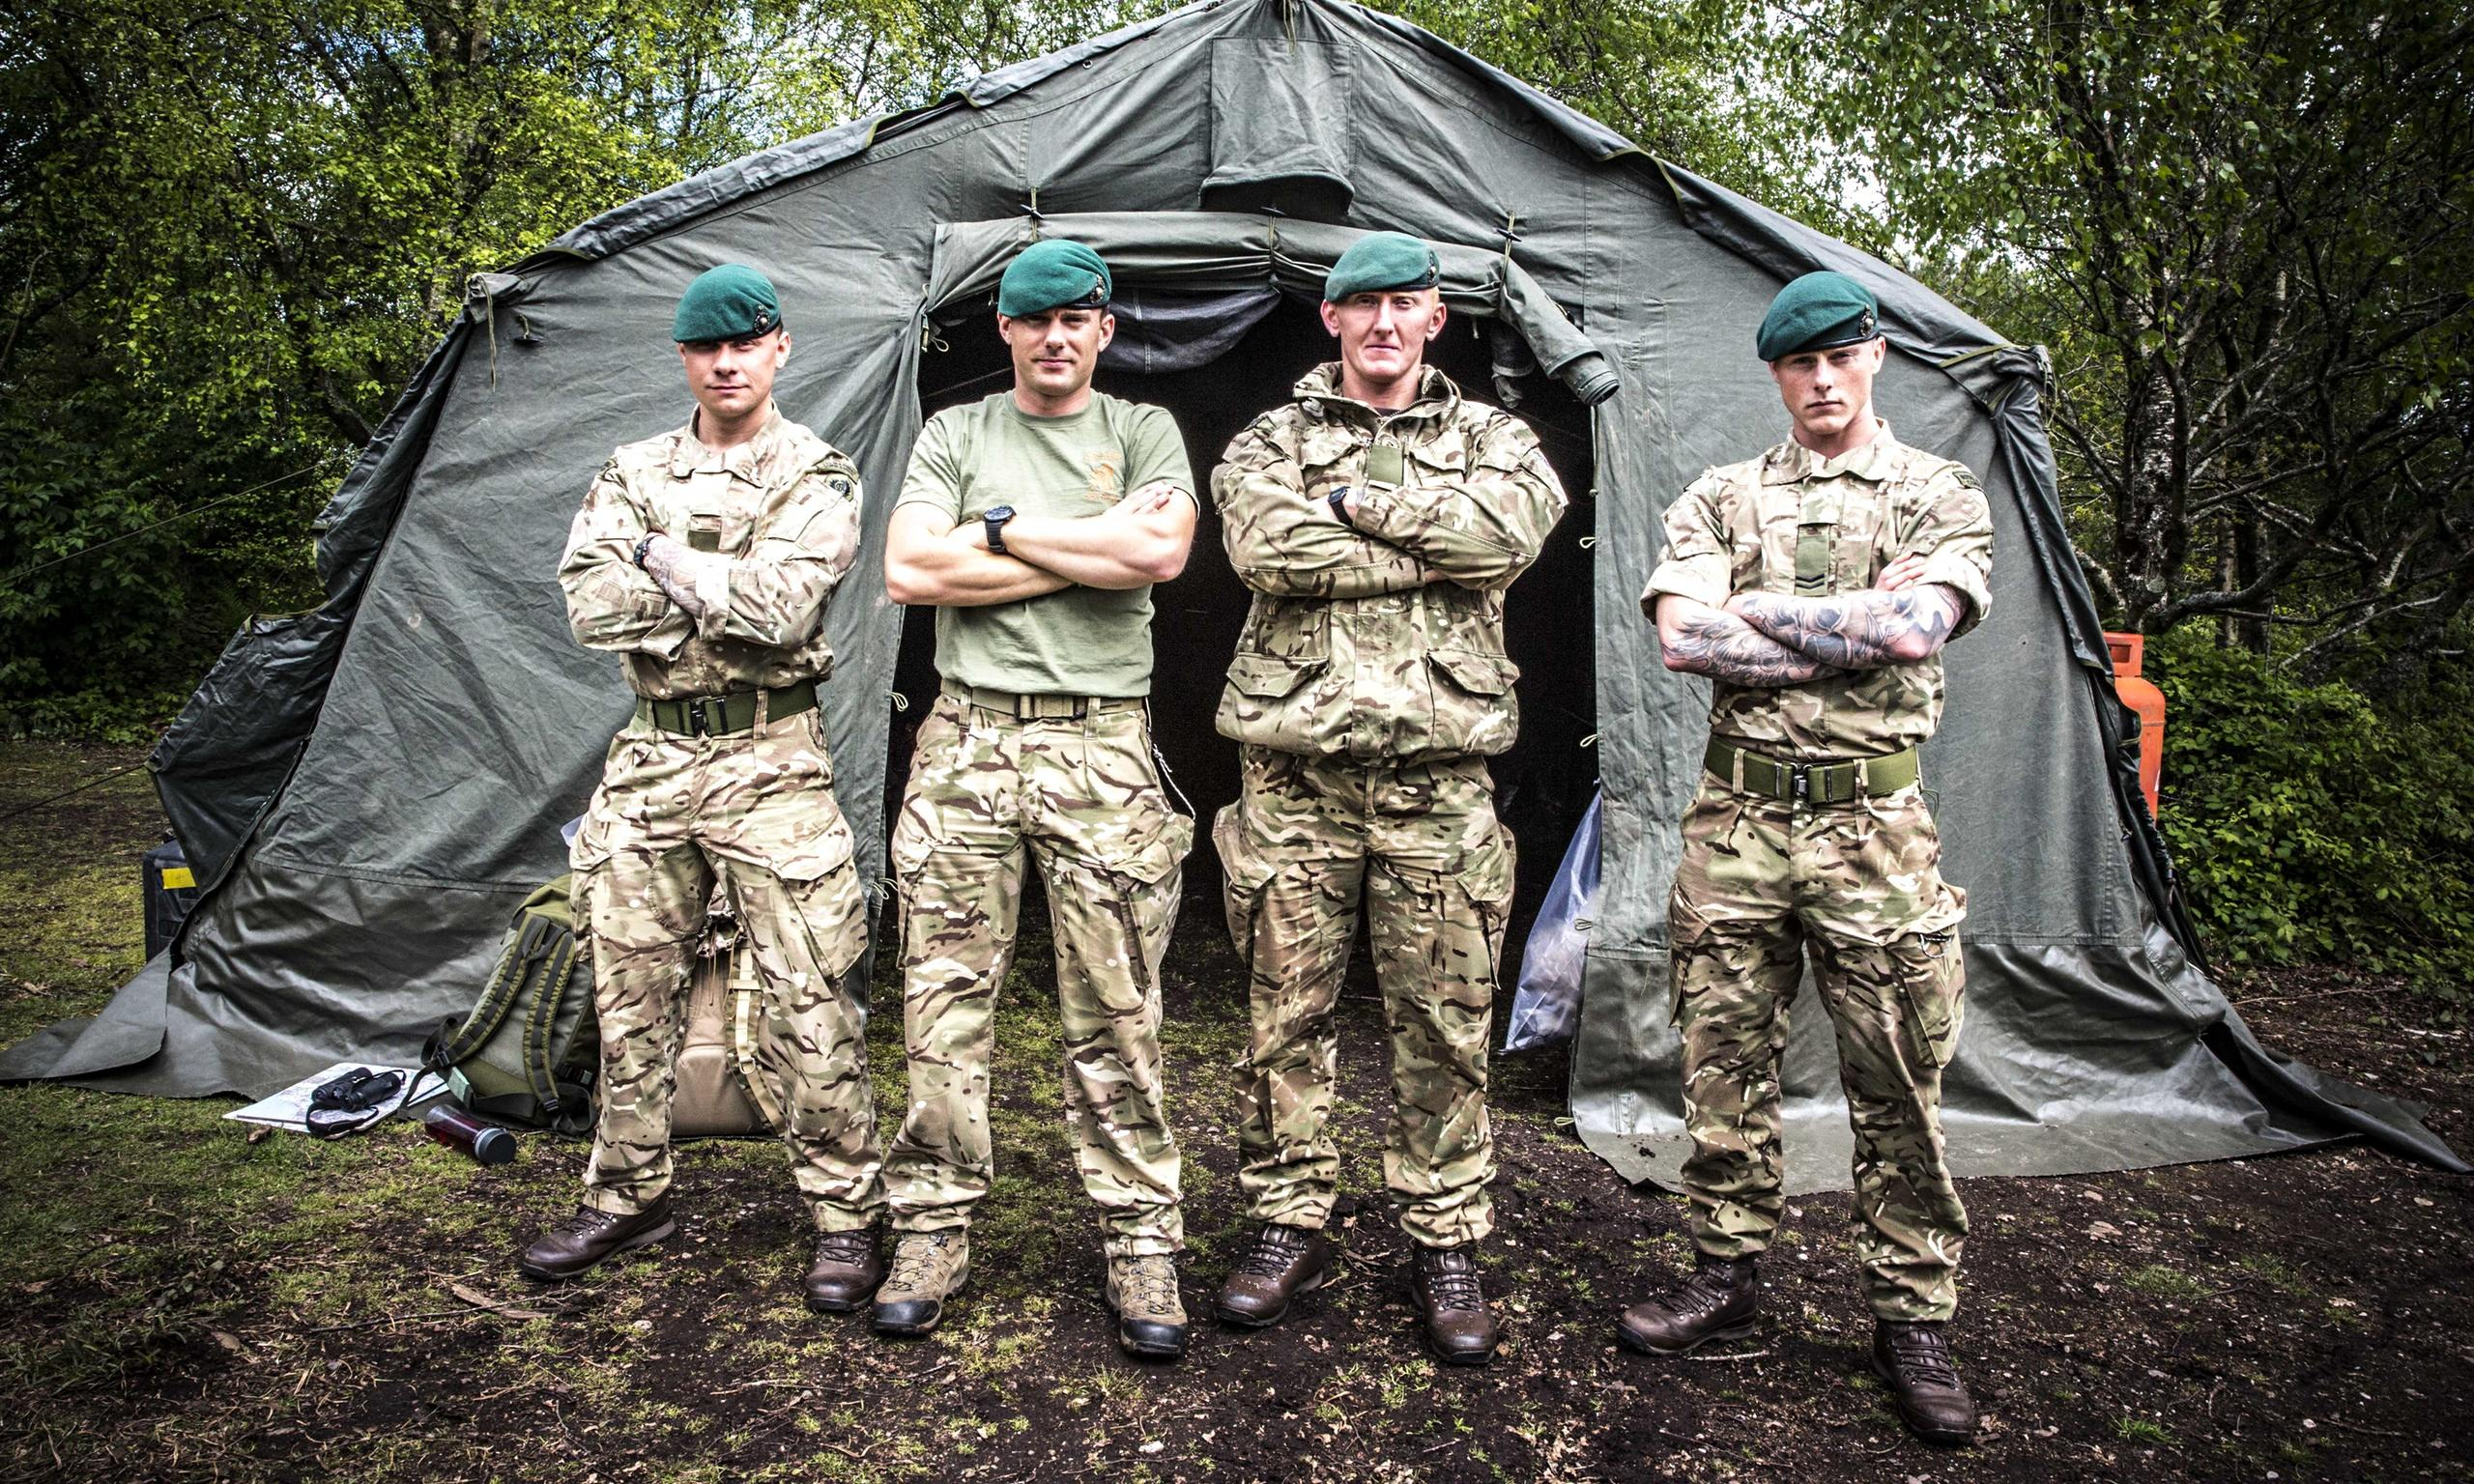 Royal Marines Commando School Review Is Spotlessness Really So Important In The Theatre Of War